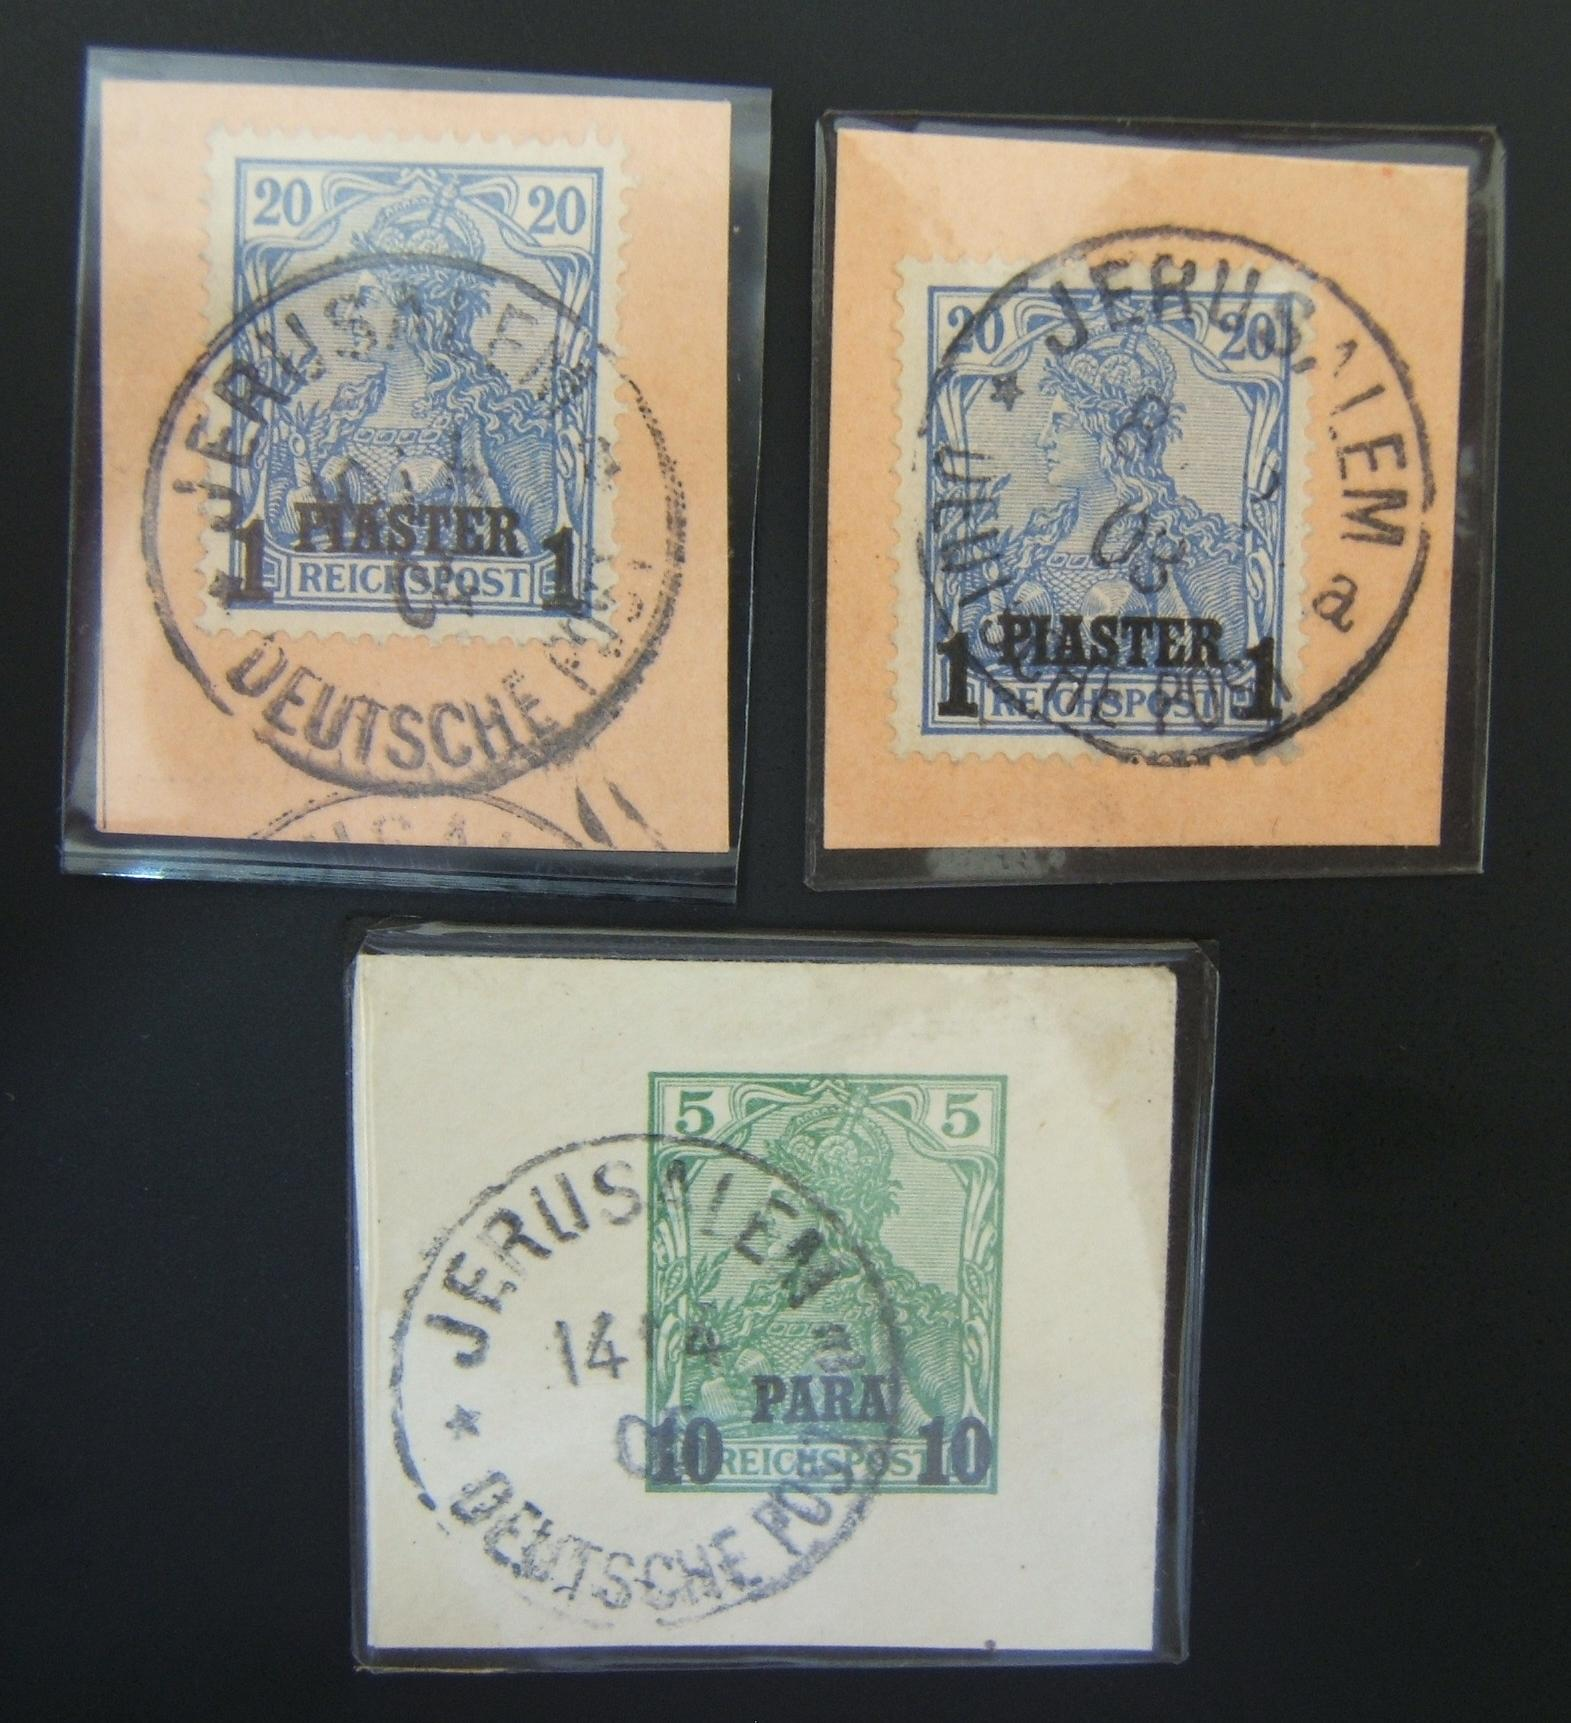 German Holyland post: lot x3 pmkd Reichspost cutouts w/roofed